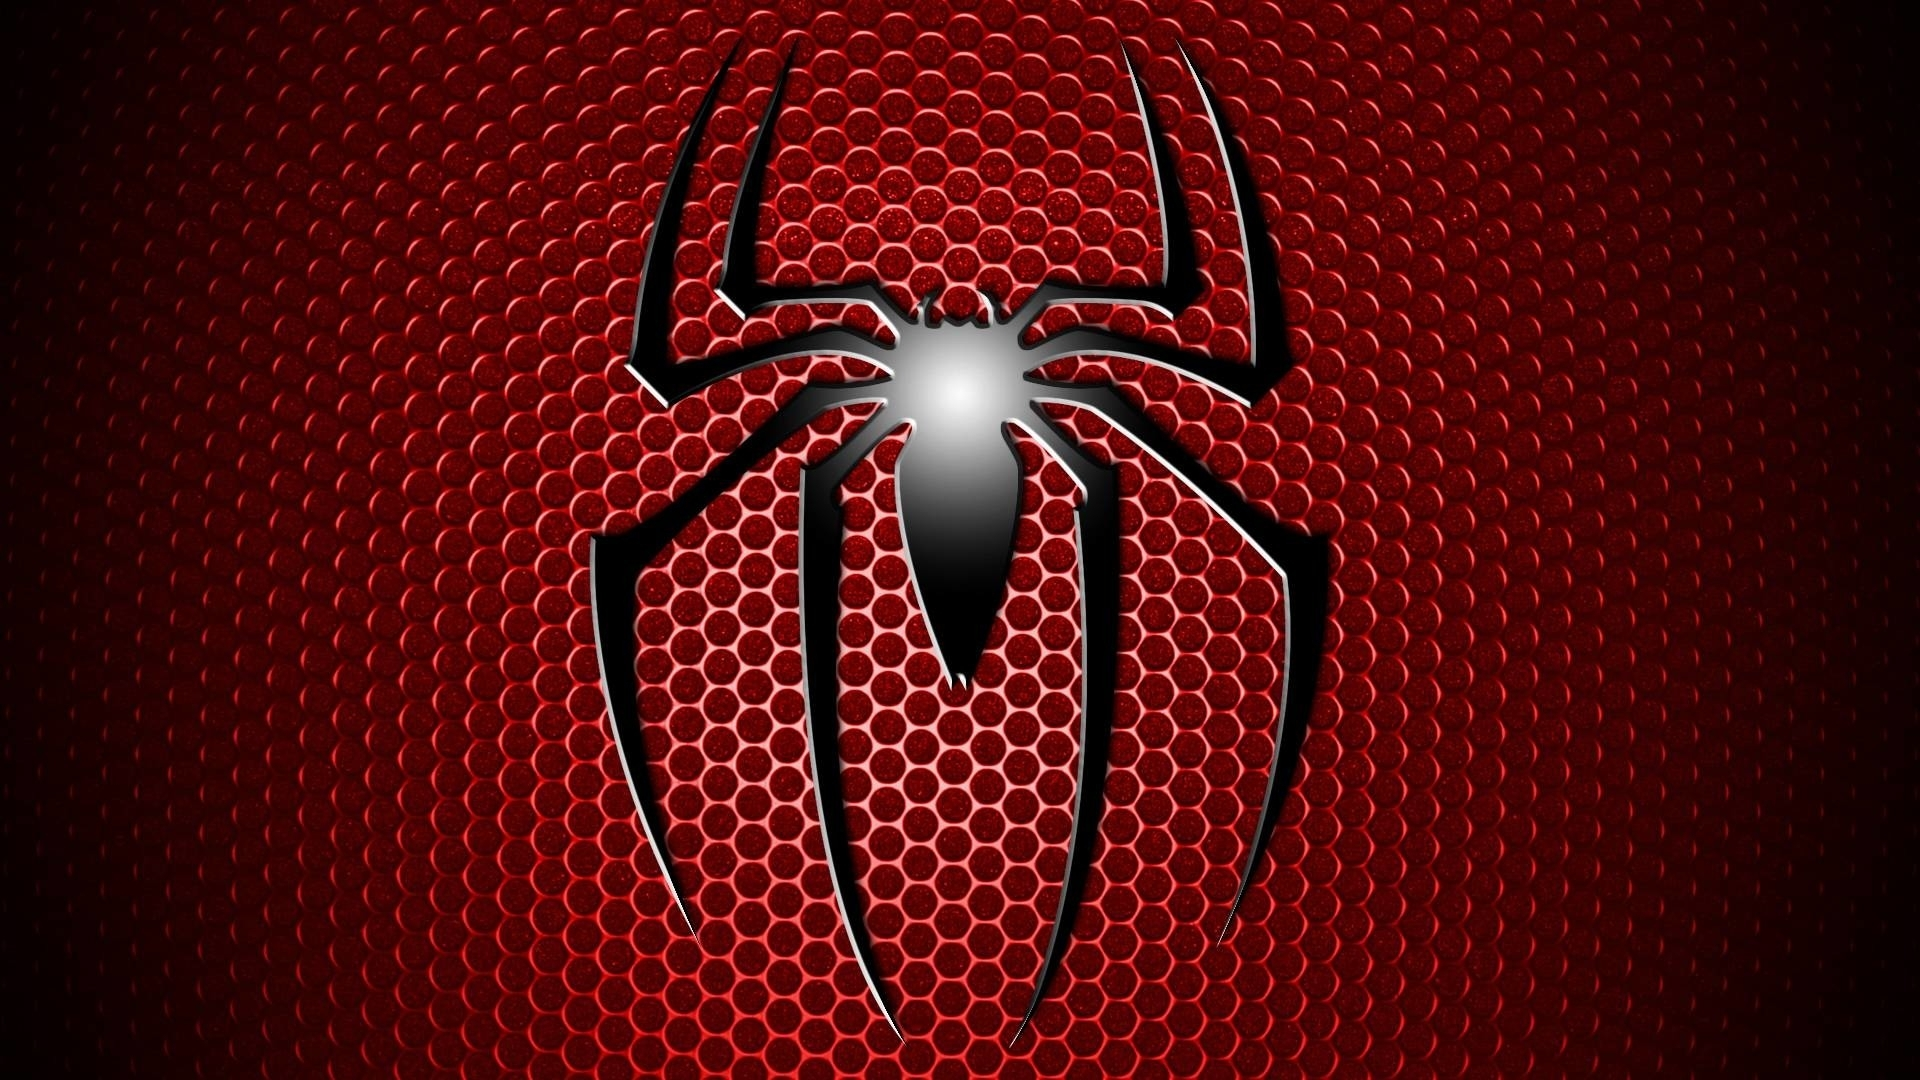 hd spiderman logo wallpaper (71+ images)